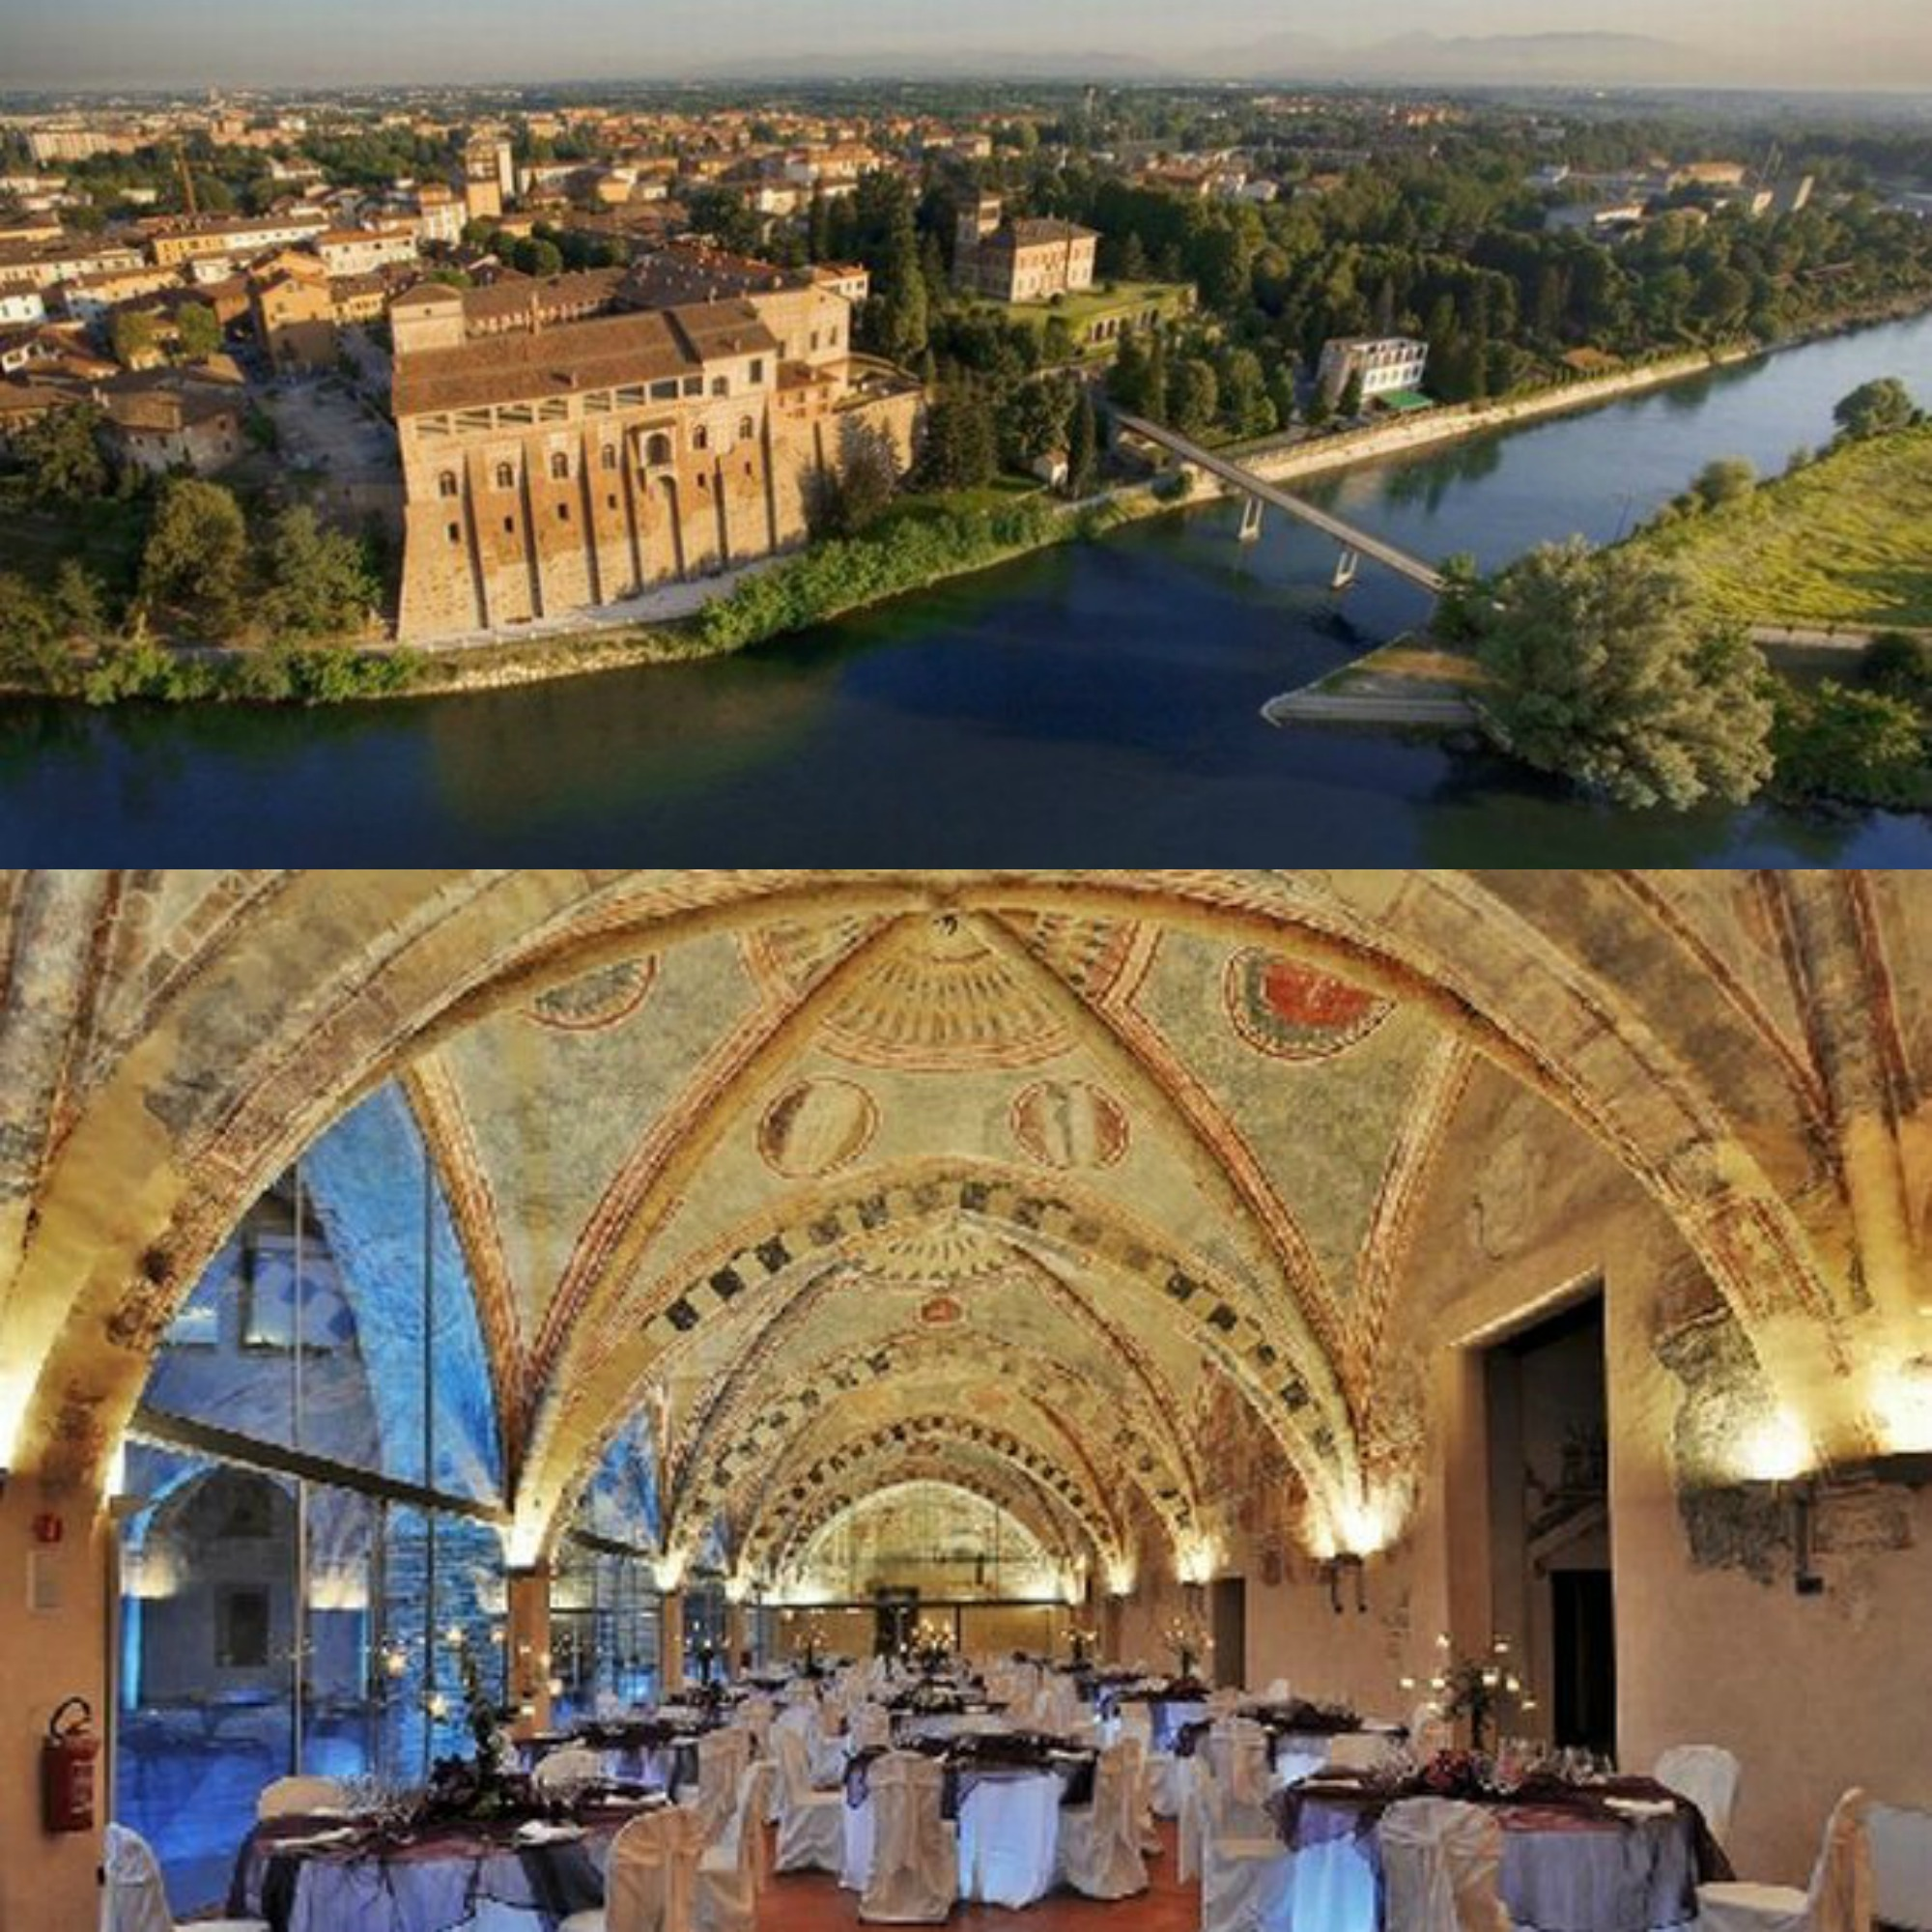 Location da sogno per matrimoni